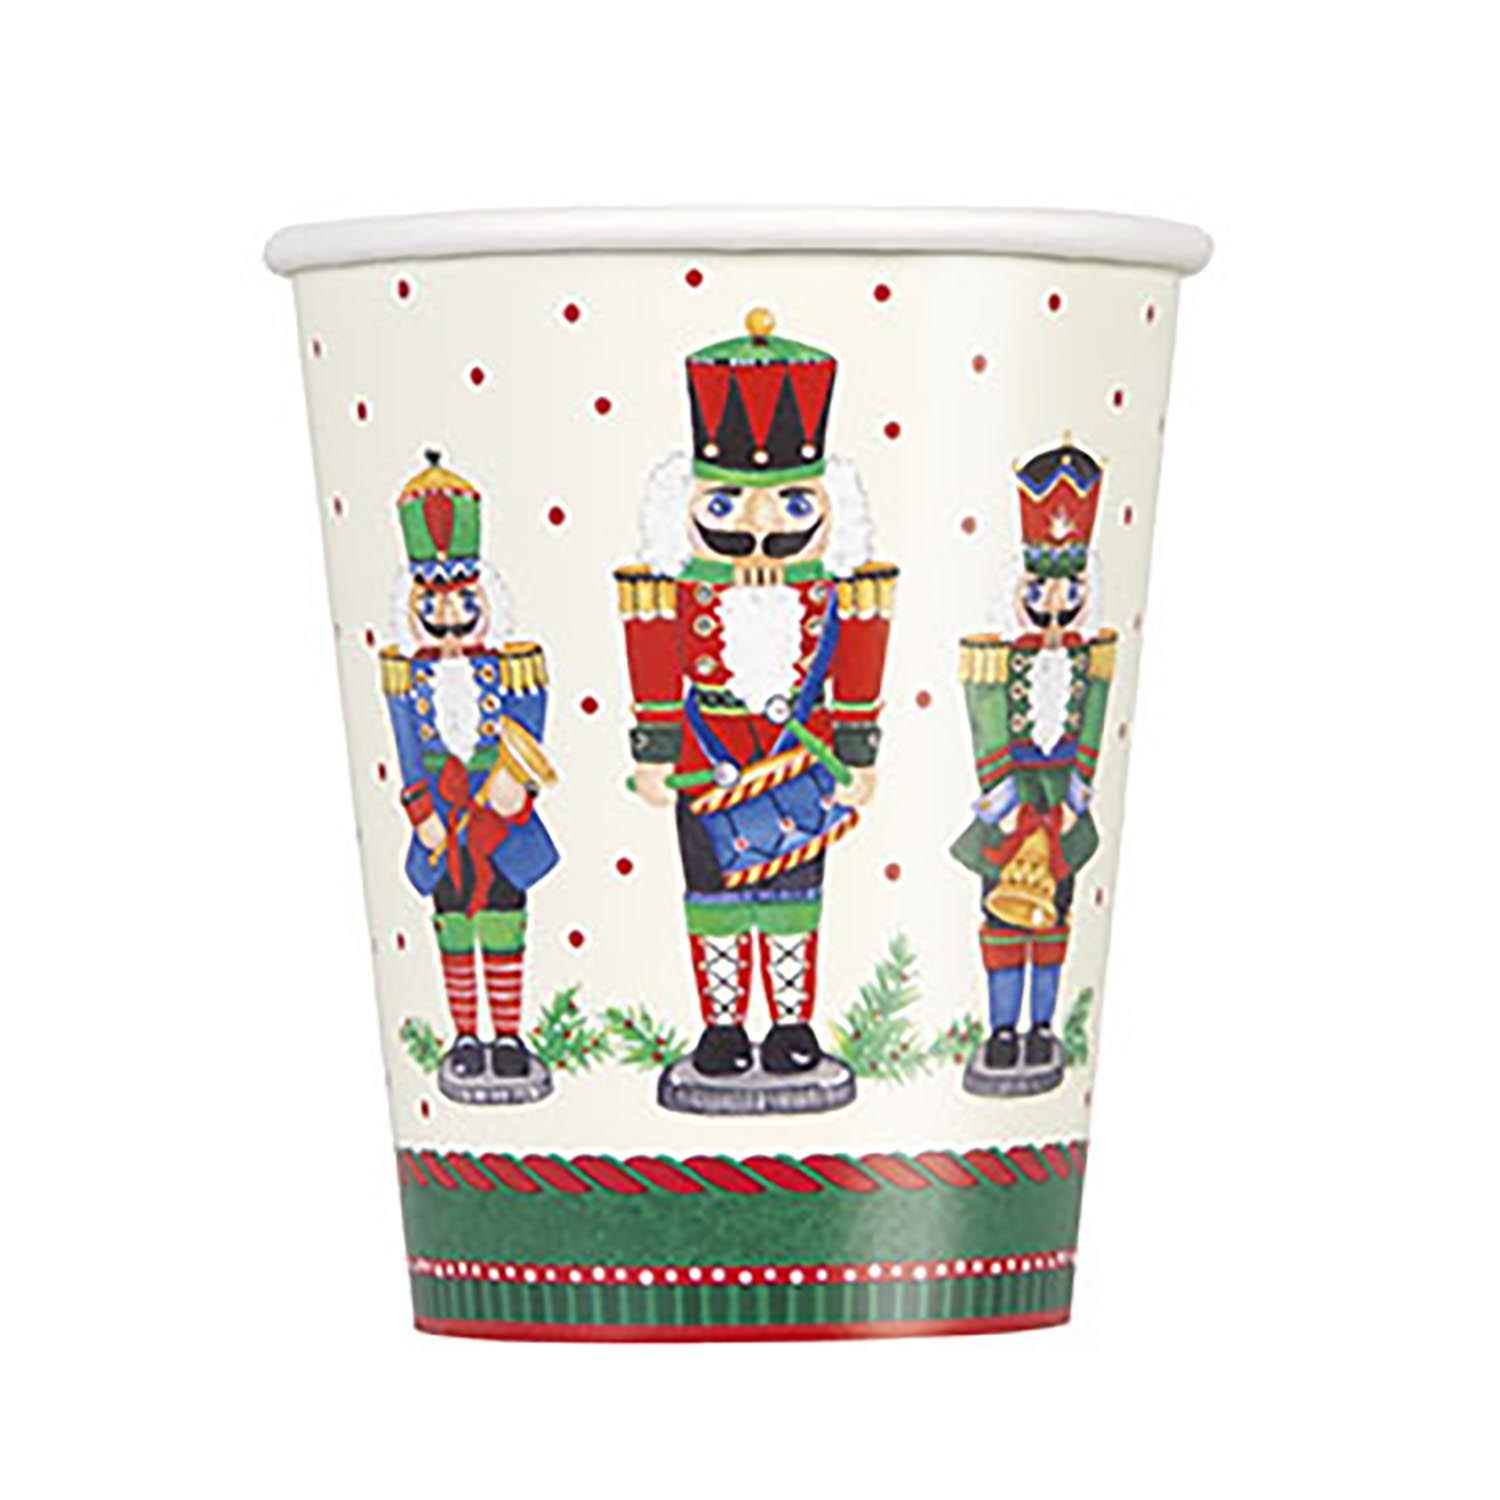 Nutcracker Christmas 9 oz. Cups 867-1036